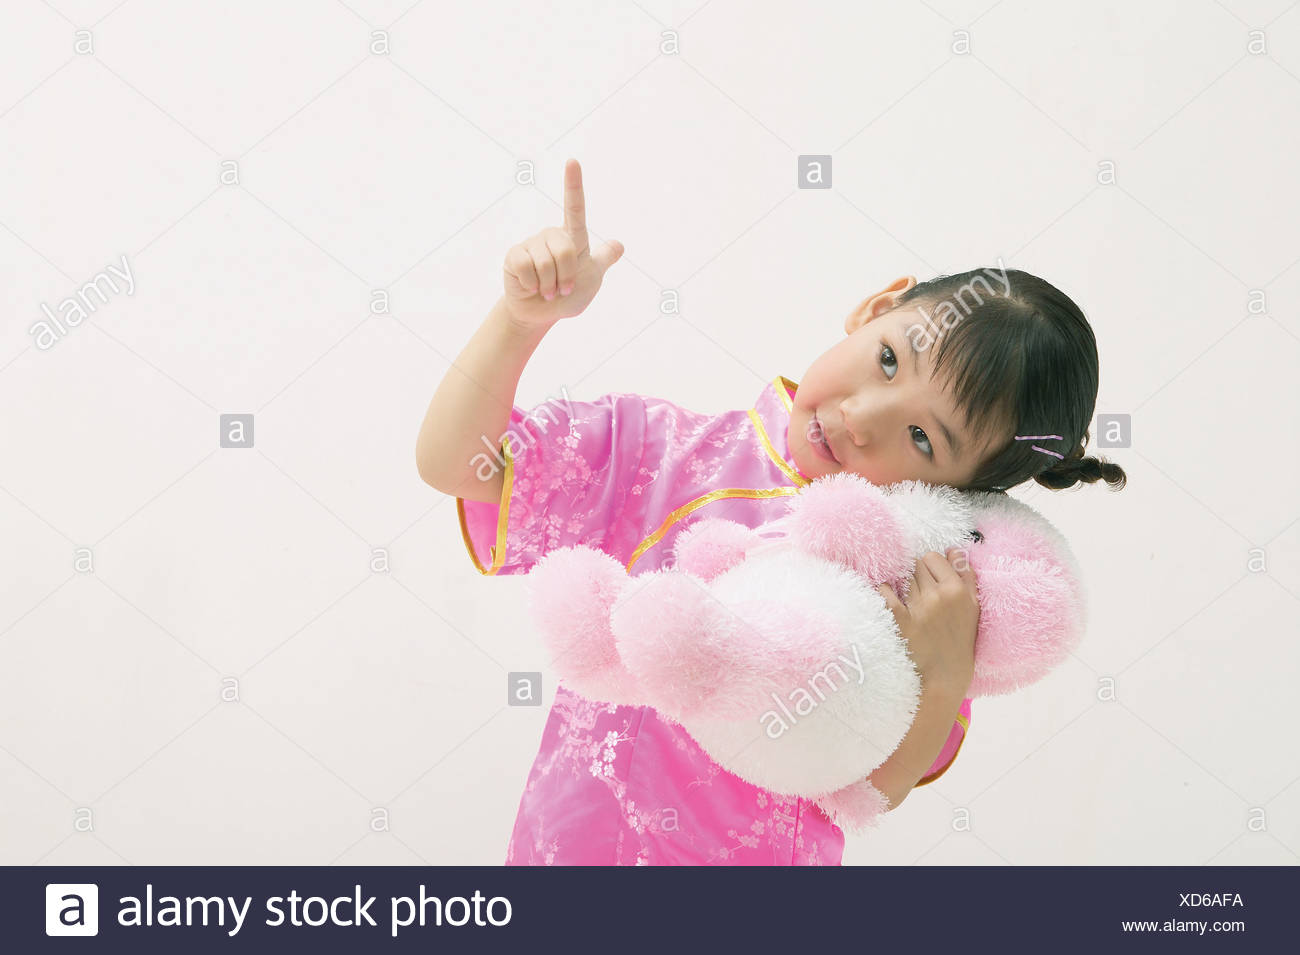 Kids Style Stock Photo